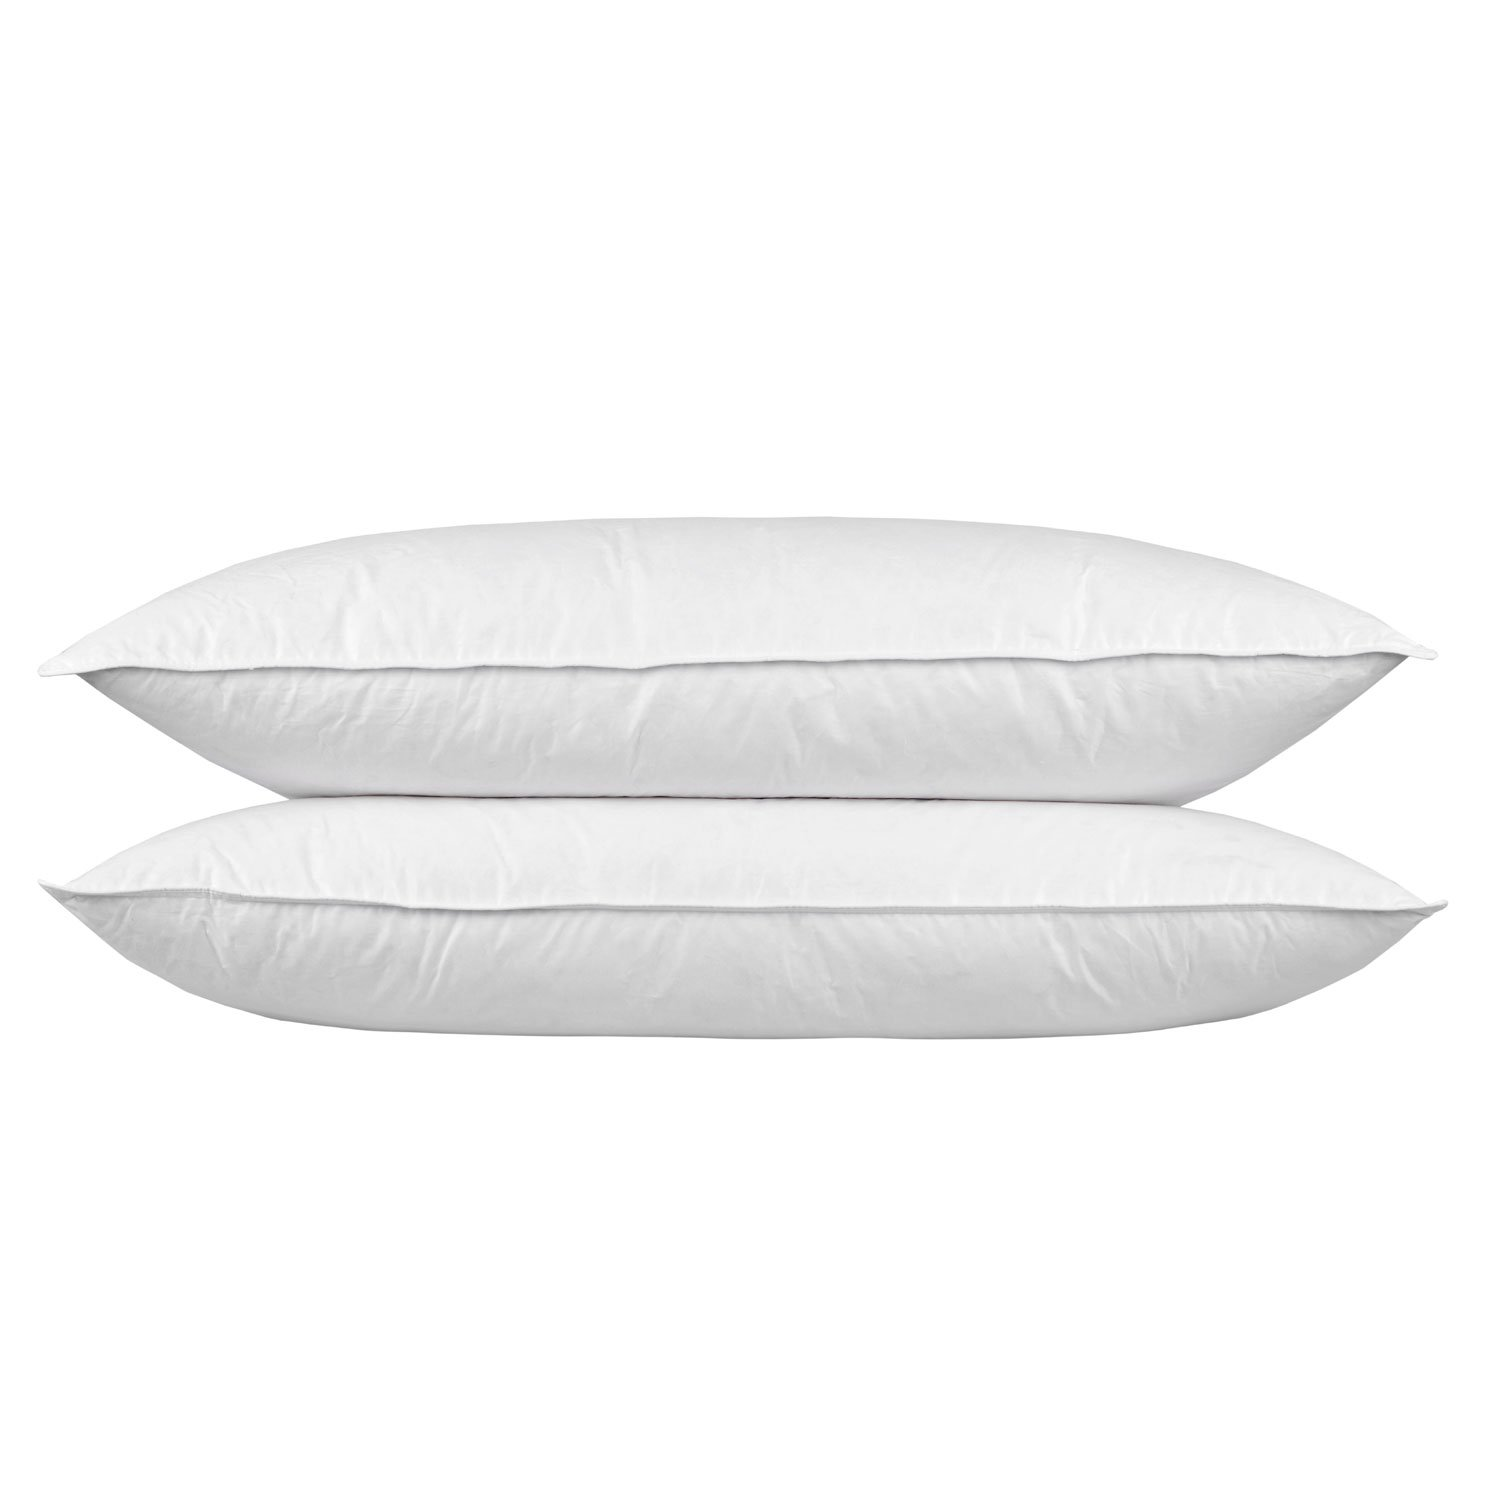 Homescapes Goose Feather Down King Size 3 ft Pillow Bolster 19 x 36 Luxury Hotel Quality with Soft/Medium Firmness (PAIR)